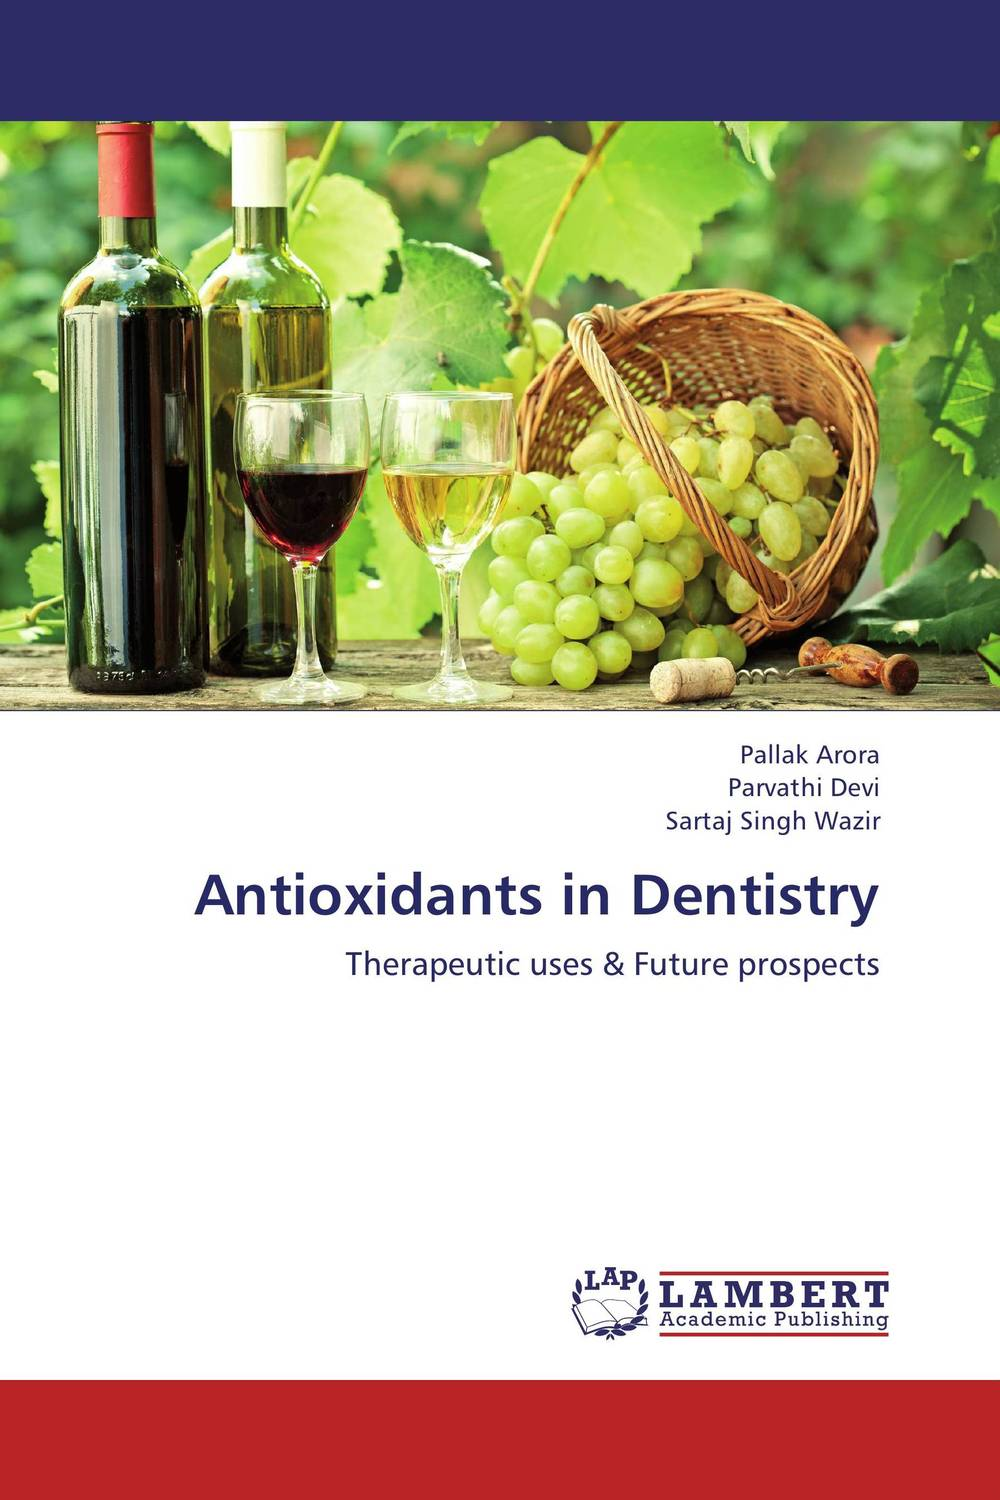 Antioxidants in Dentistry role of ultrasound in dentistry